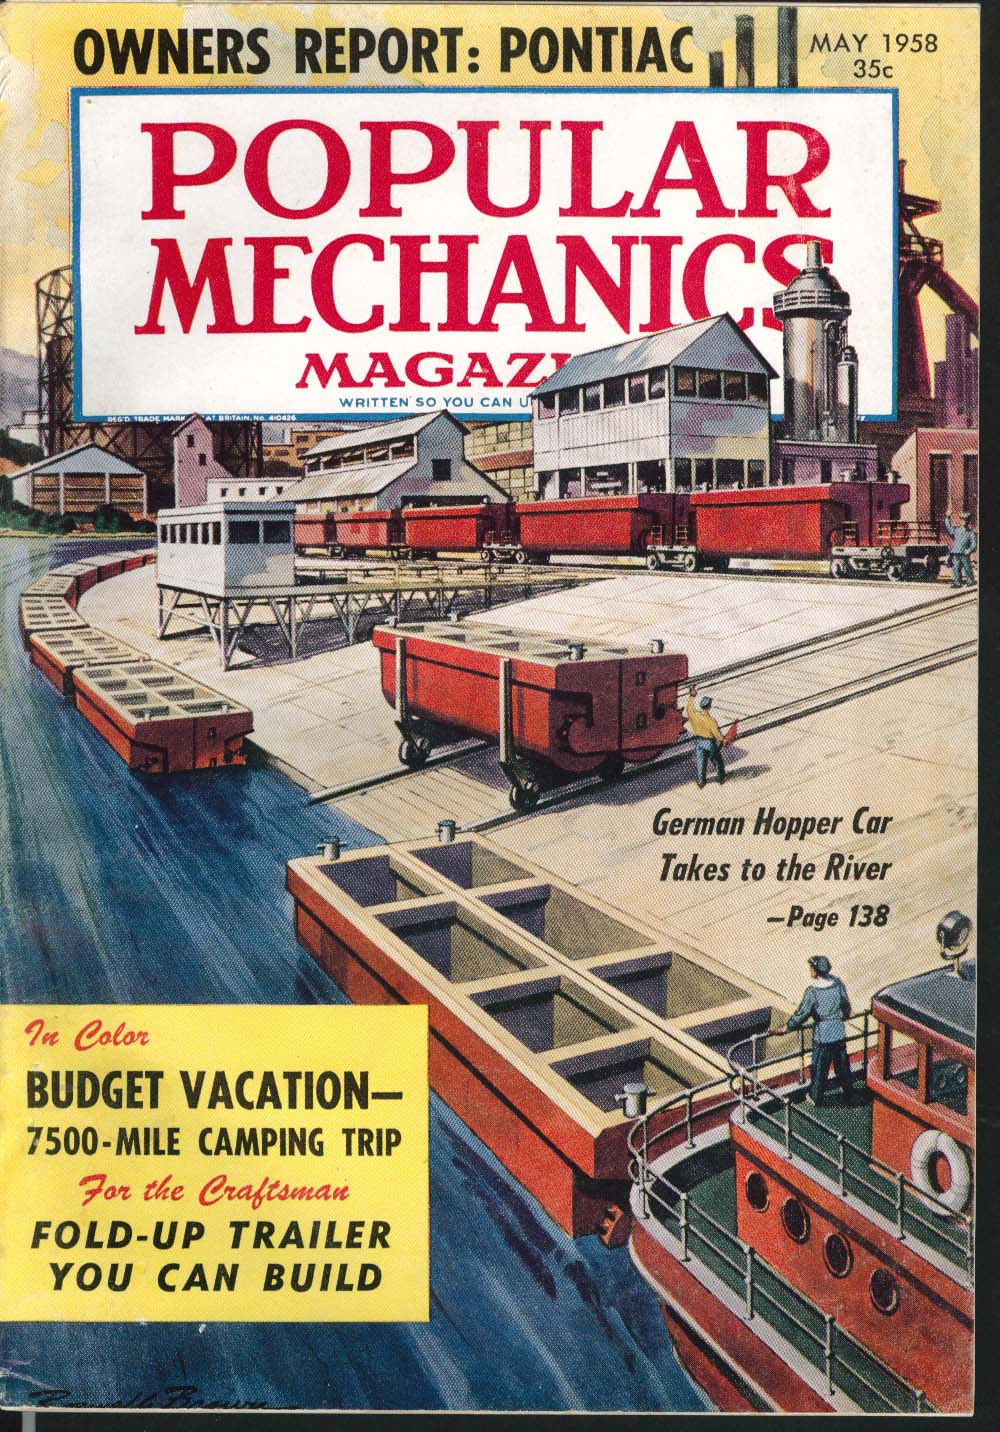 POPULAR MECHANICS Pontiac owners report Budget Camping Vacation 5 1958